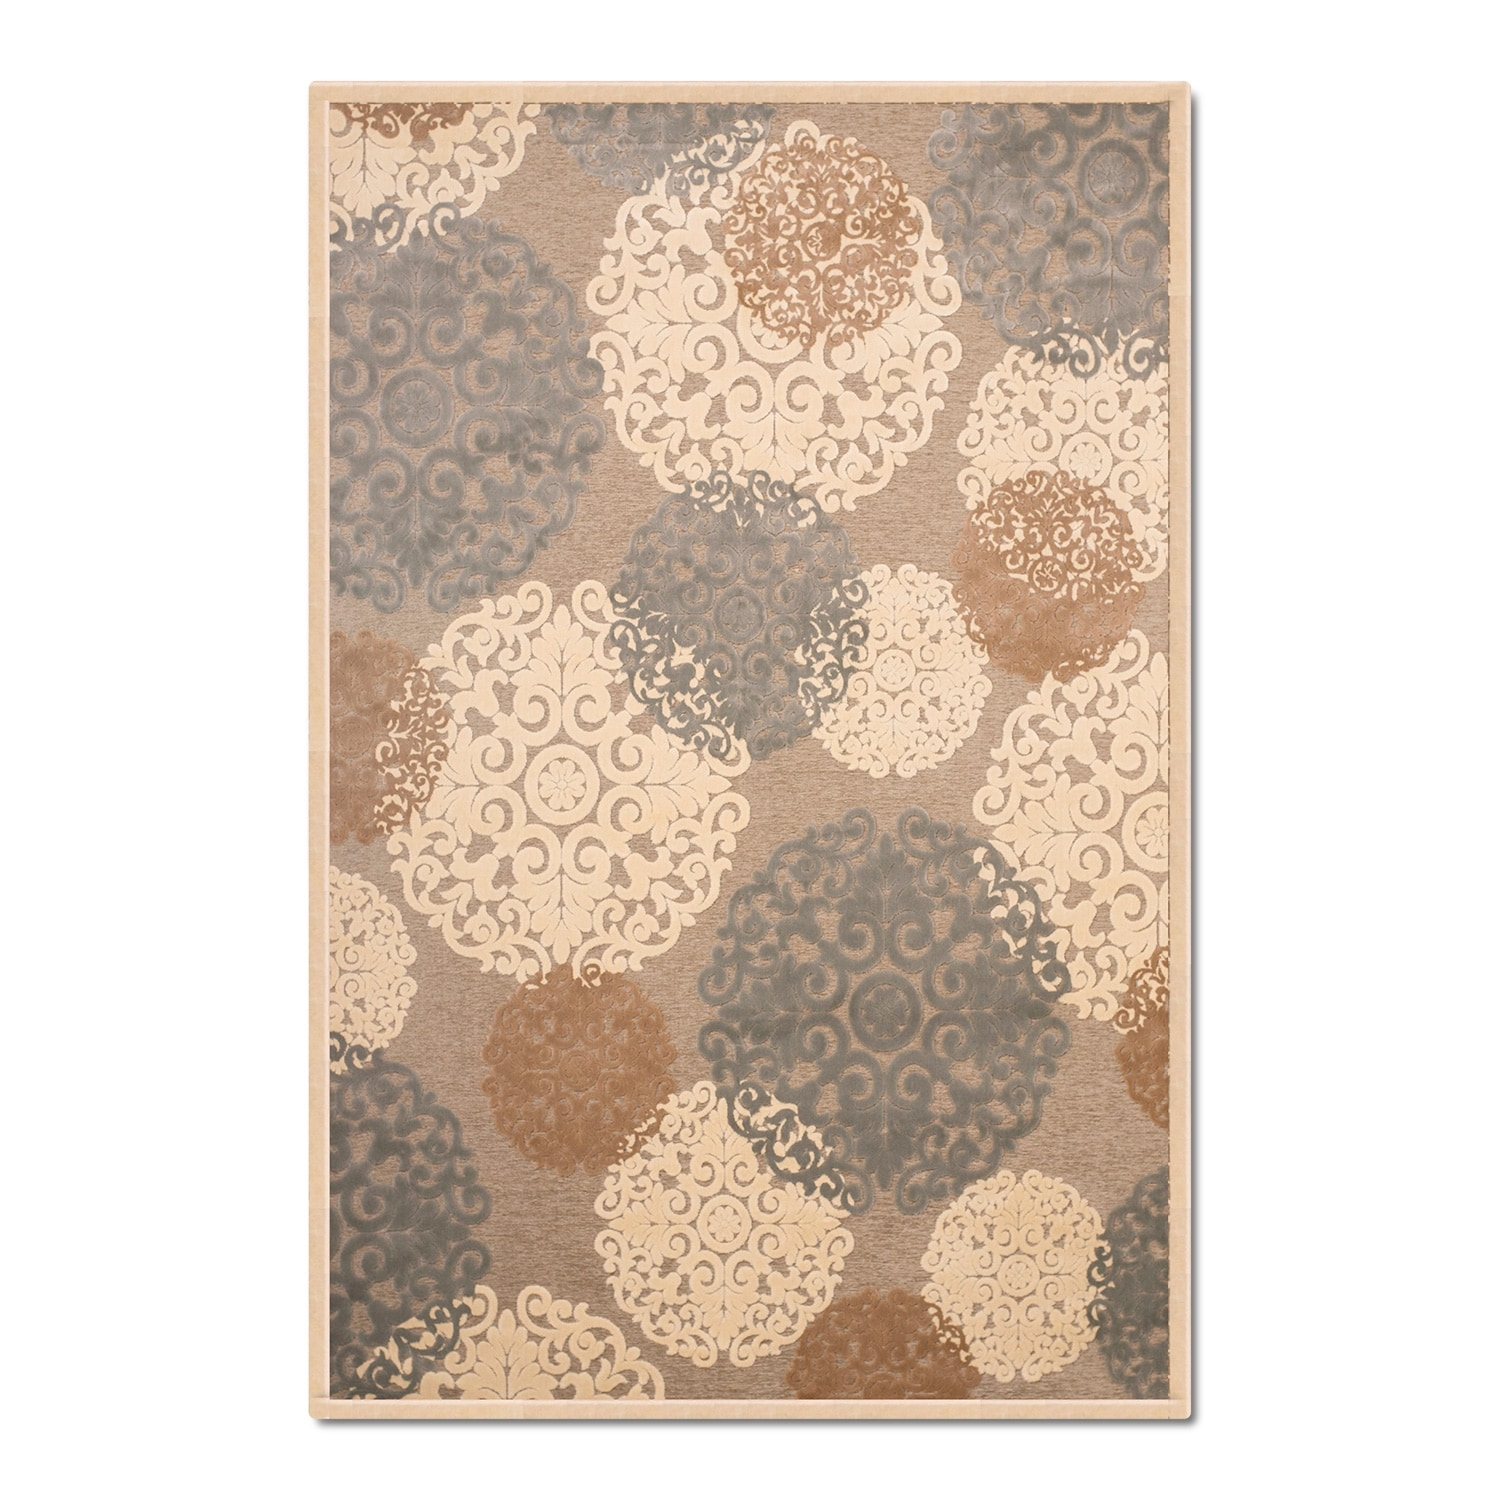 Rugs - Napa Light Snowflakes Area Rug - Ivory and Teal